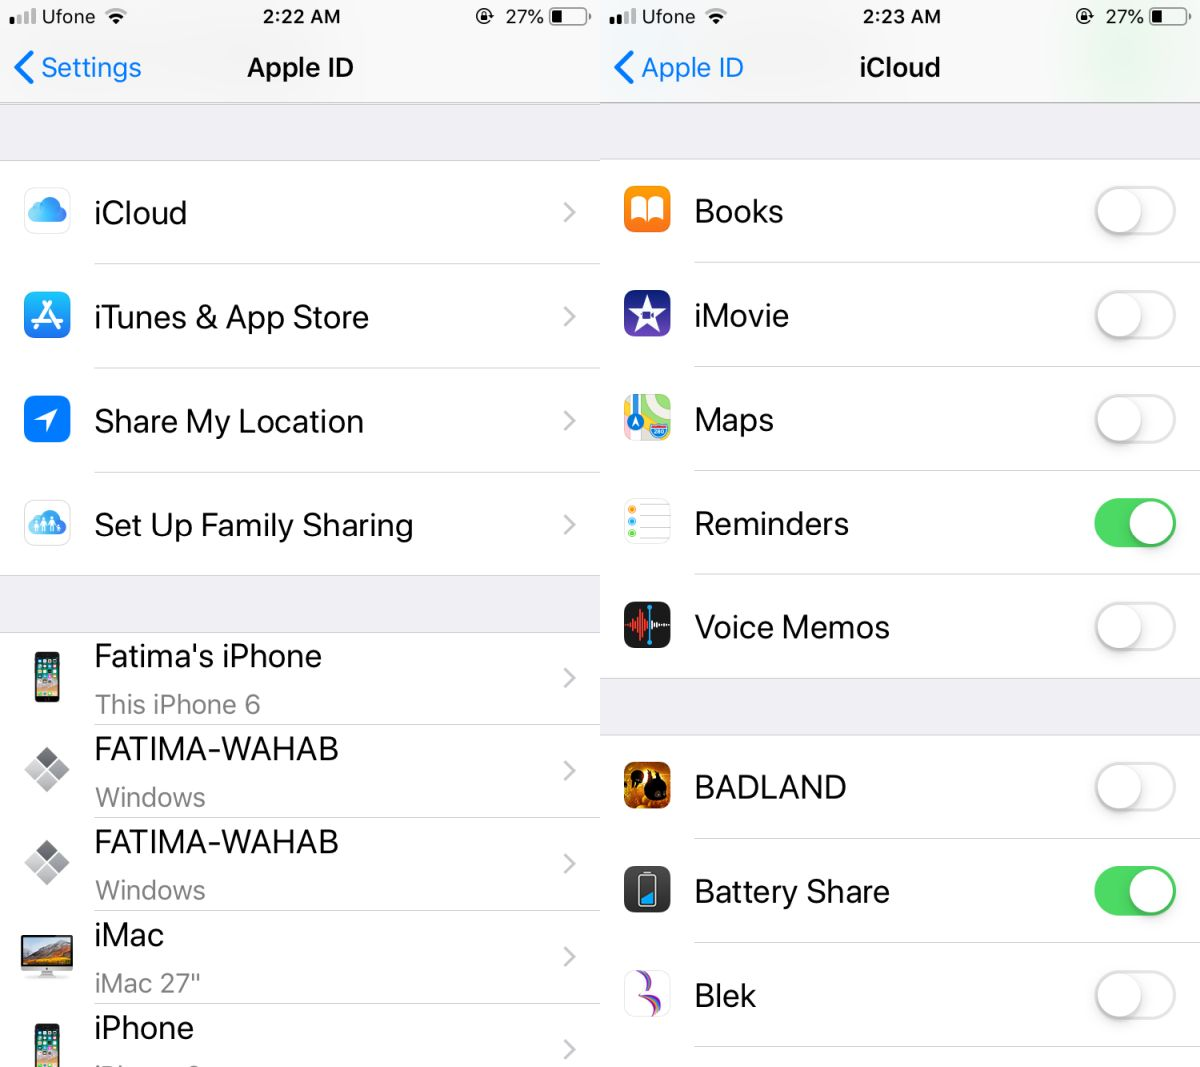 how to disable voice memo sync on ios 12 How To Disable Voice Memo Sync On iOS 12